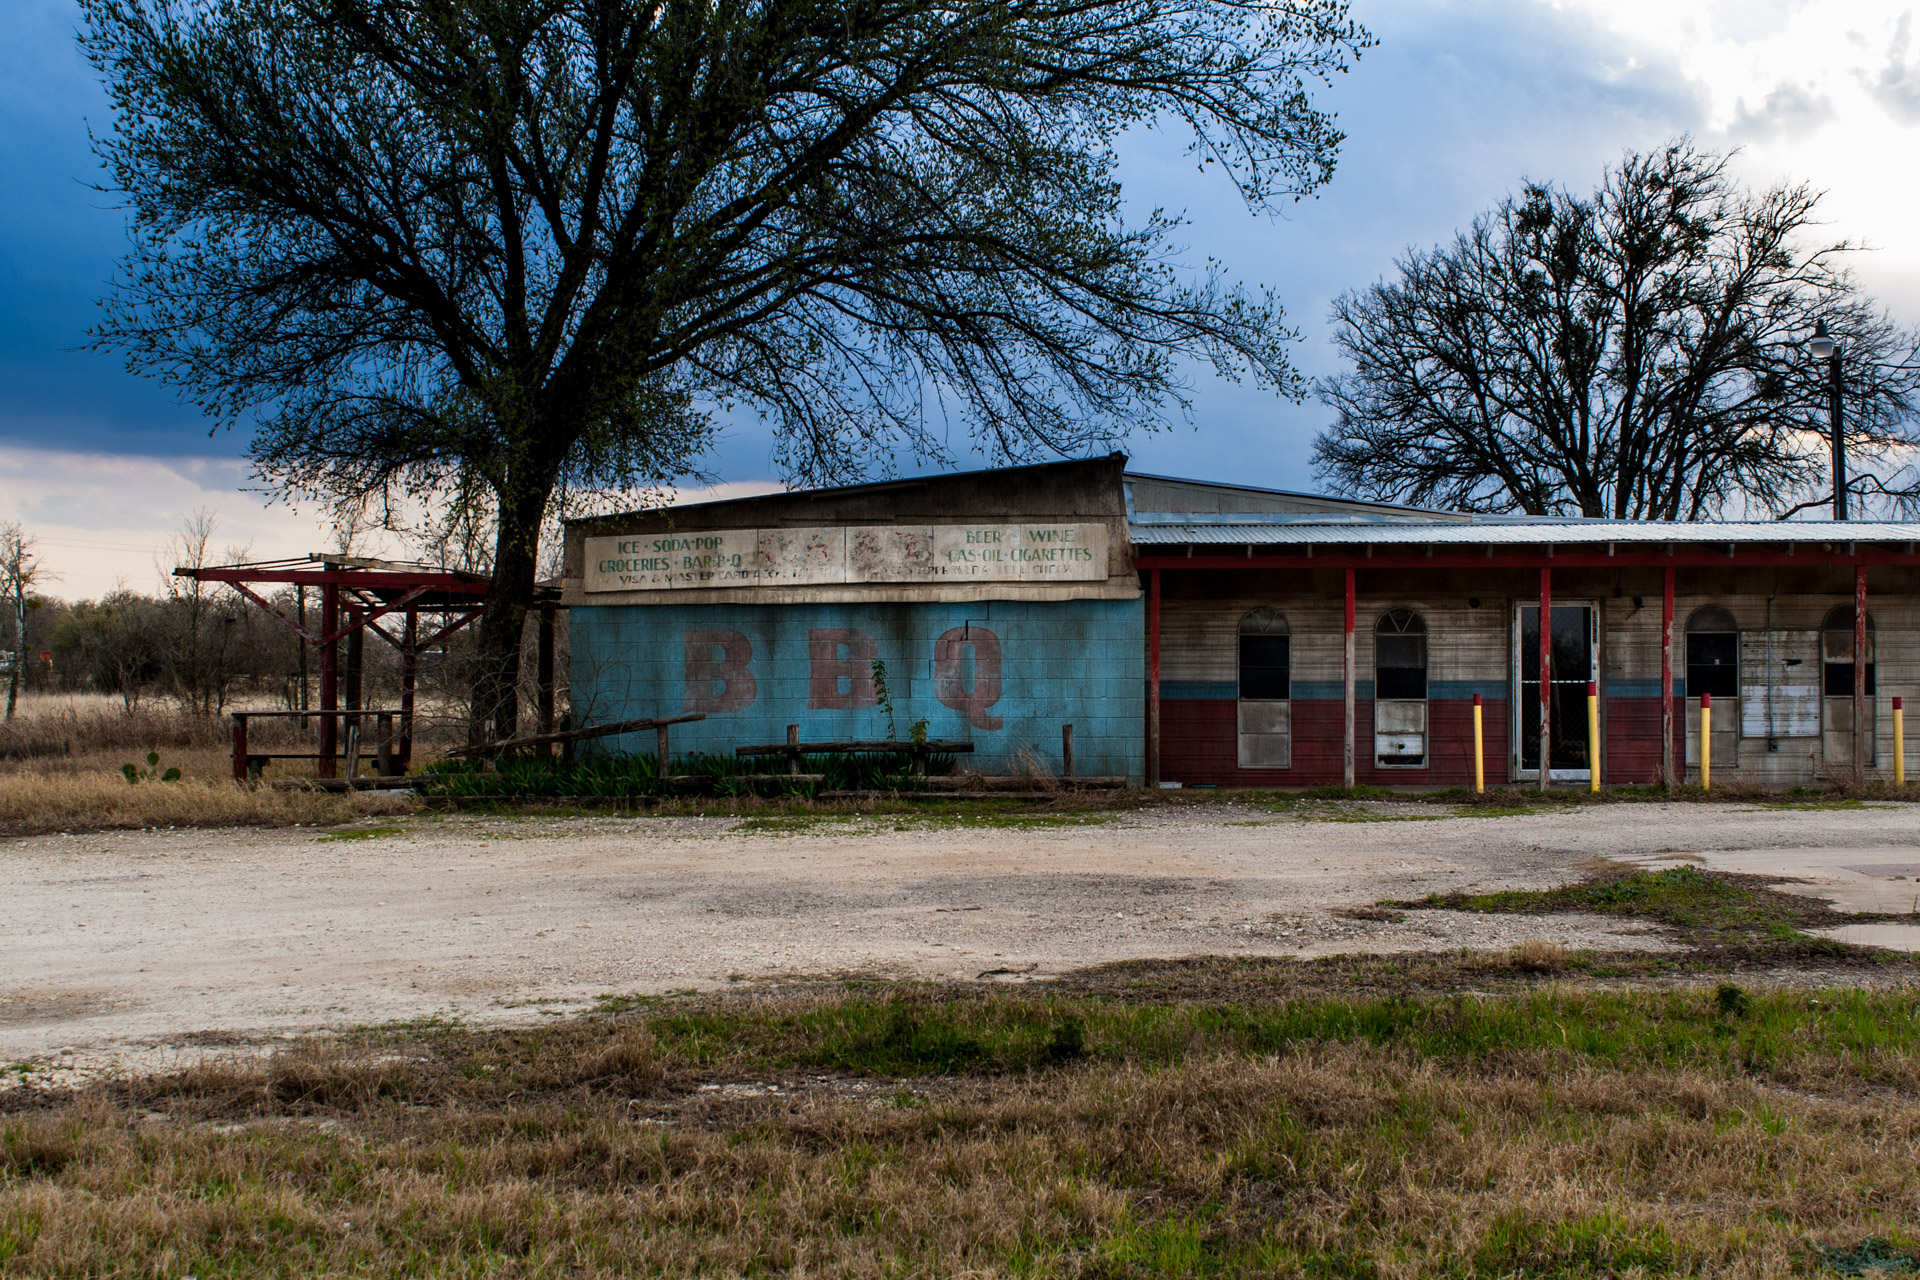 Elgin, Texas - BBQ And Gas Station (front left)